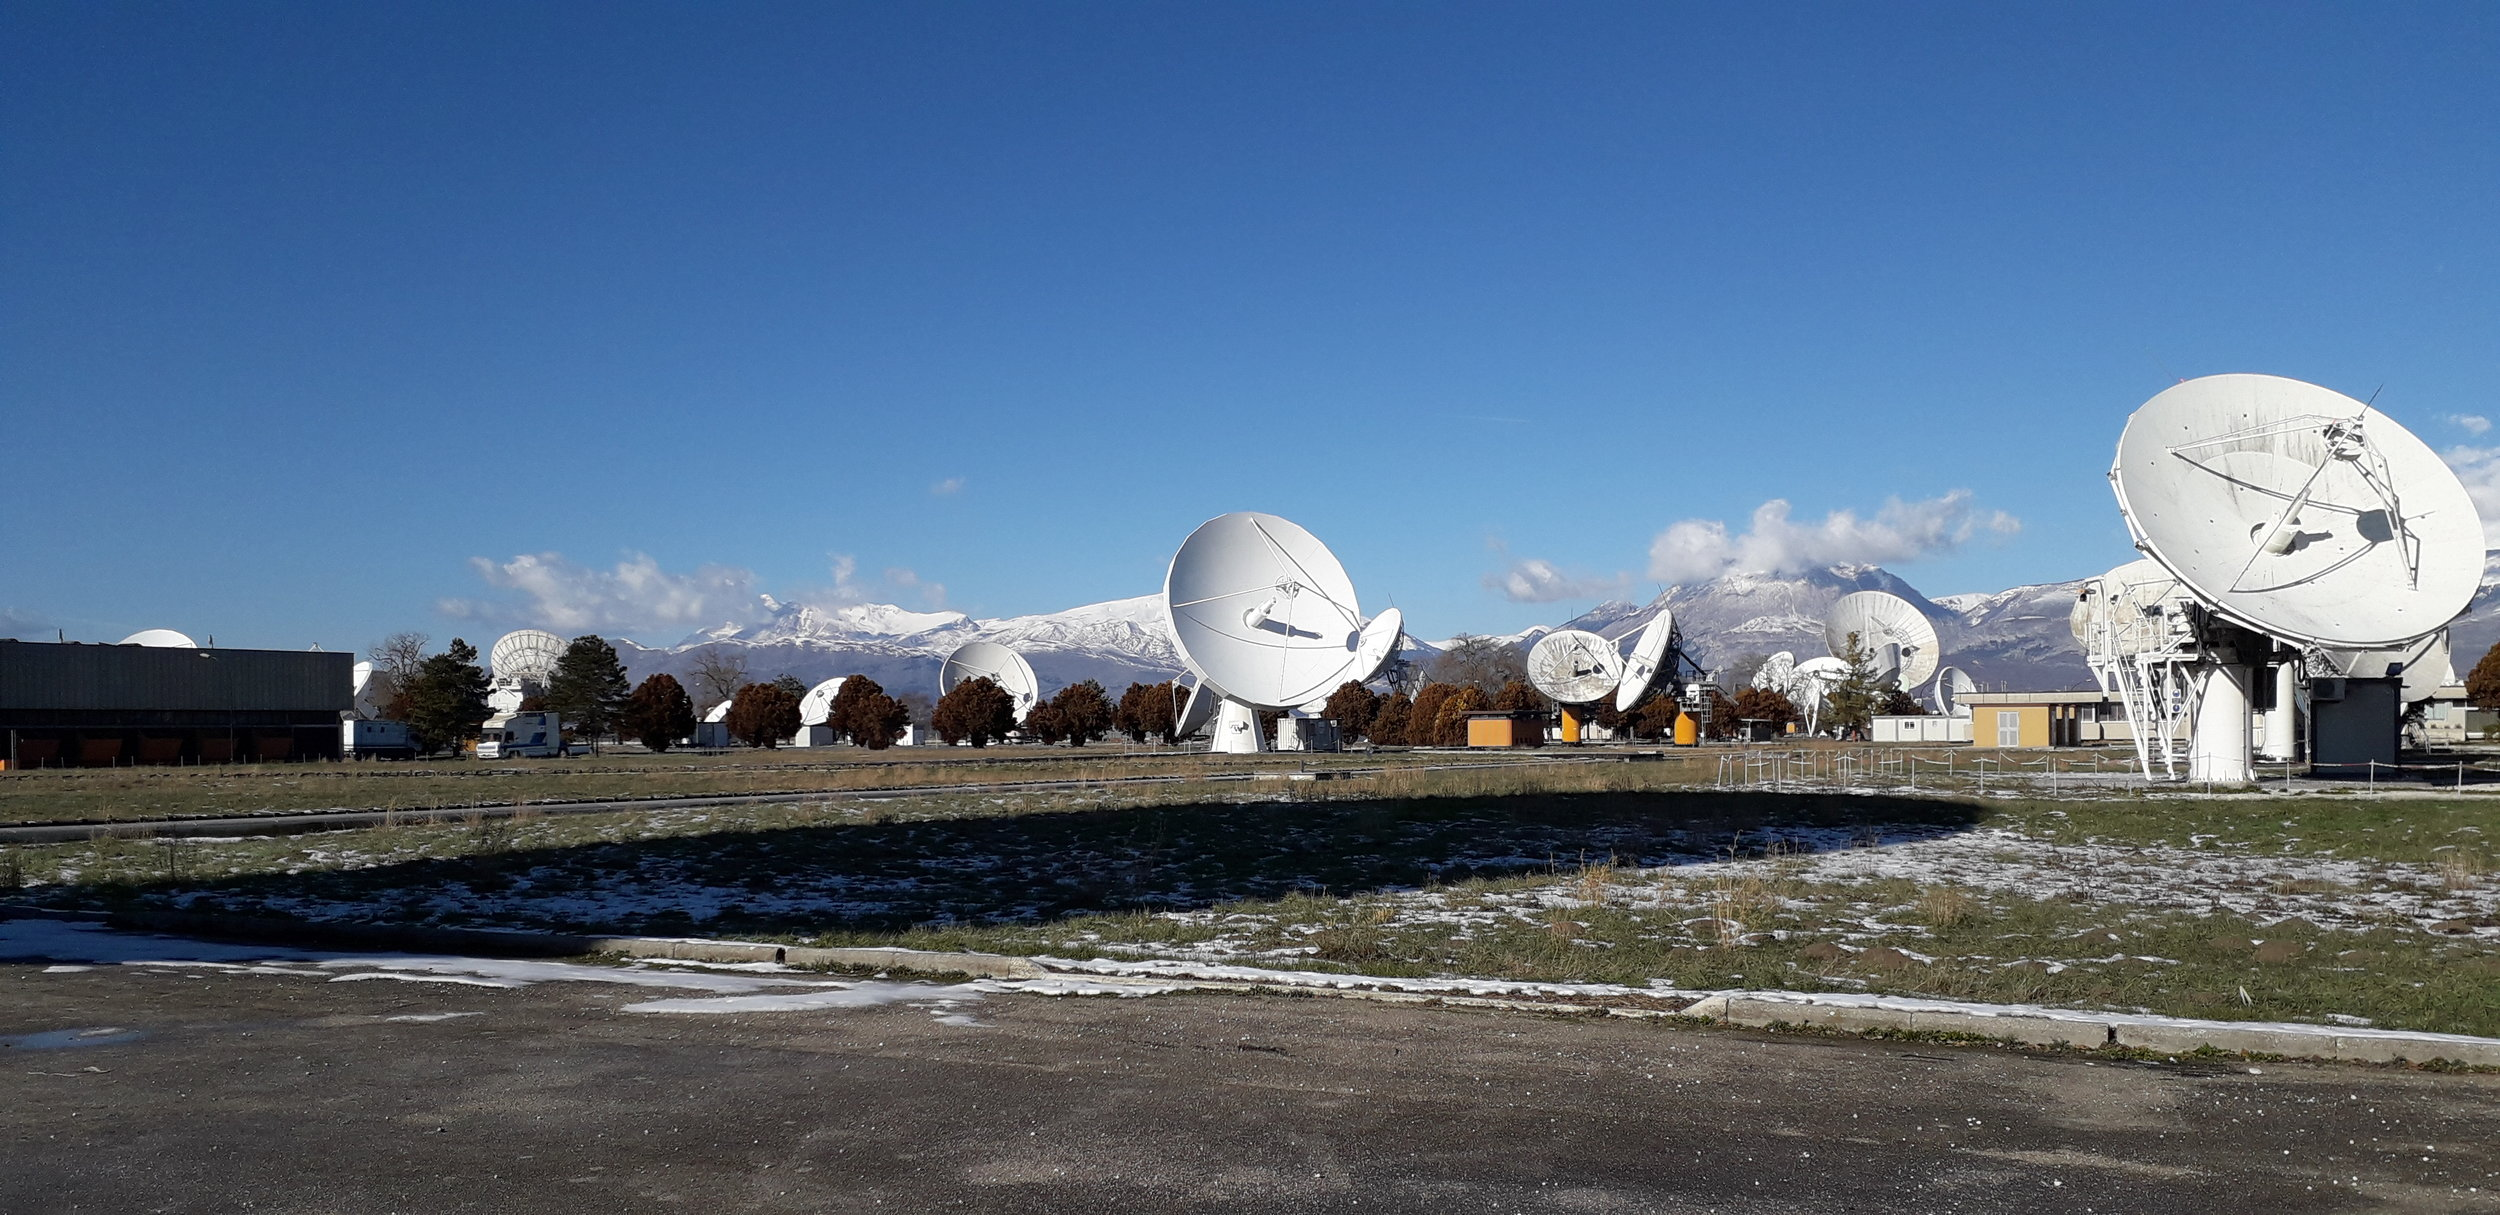 The problem of the center was the formation of ice in the winter on the antennas, and the consequent risk of malfunction. After a thorough study of the available space we opted for the installation of HOT AIR GENERATORS IN LOW-PRESSURE DIRECT COMBUSTION, the models GA / N that thanks to their characteristics have proved ideal for the task required.